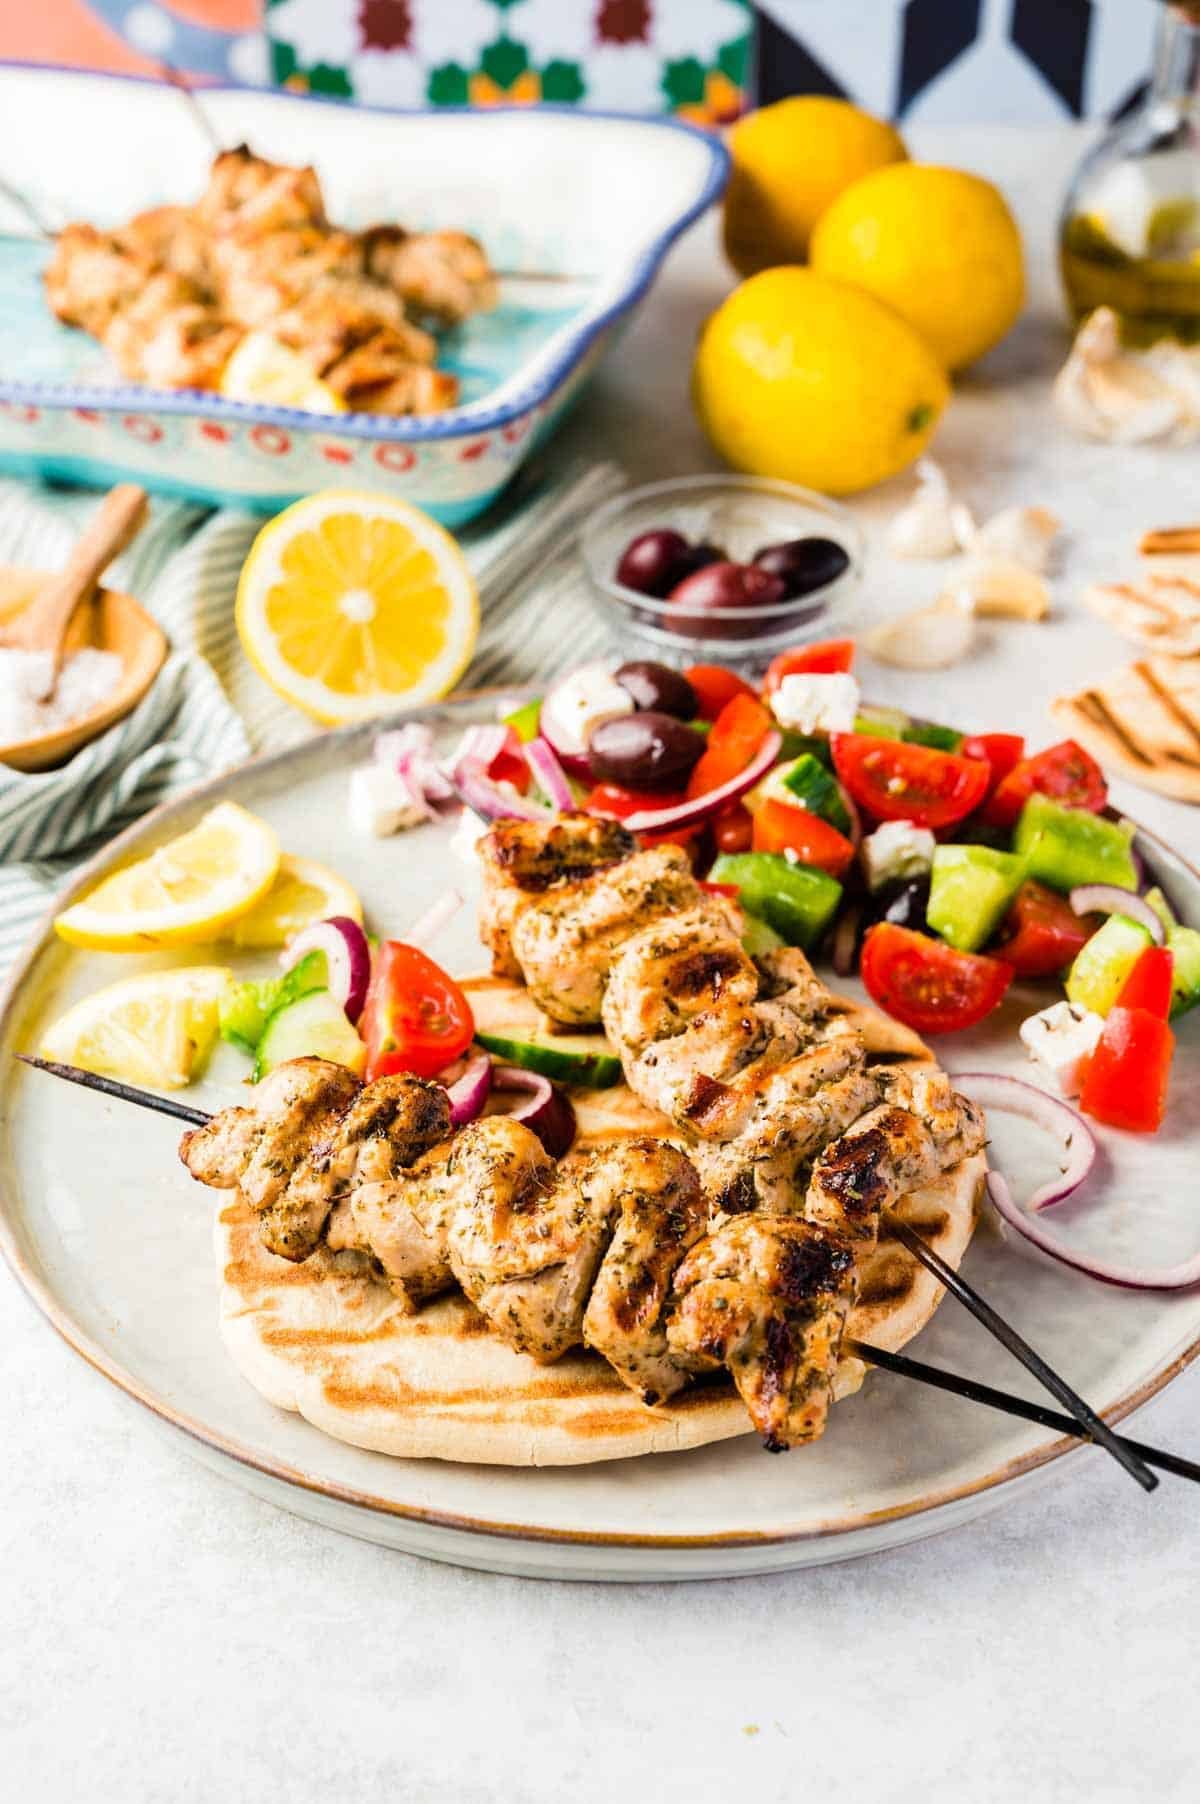 A Plate of Chicken Souvlaki, Grilled Bread and Greek Salad on a Cluttered Countertop